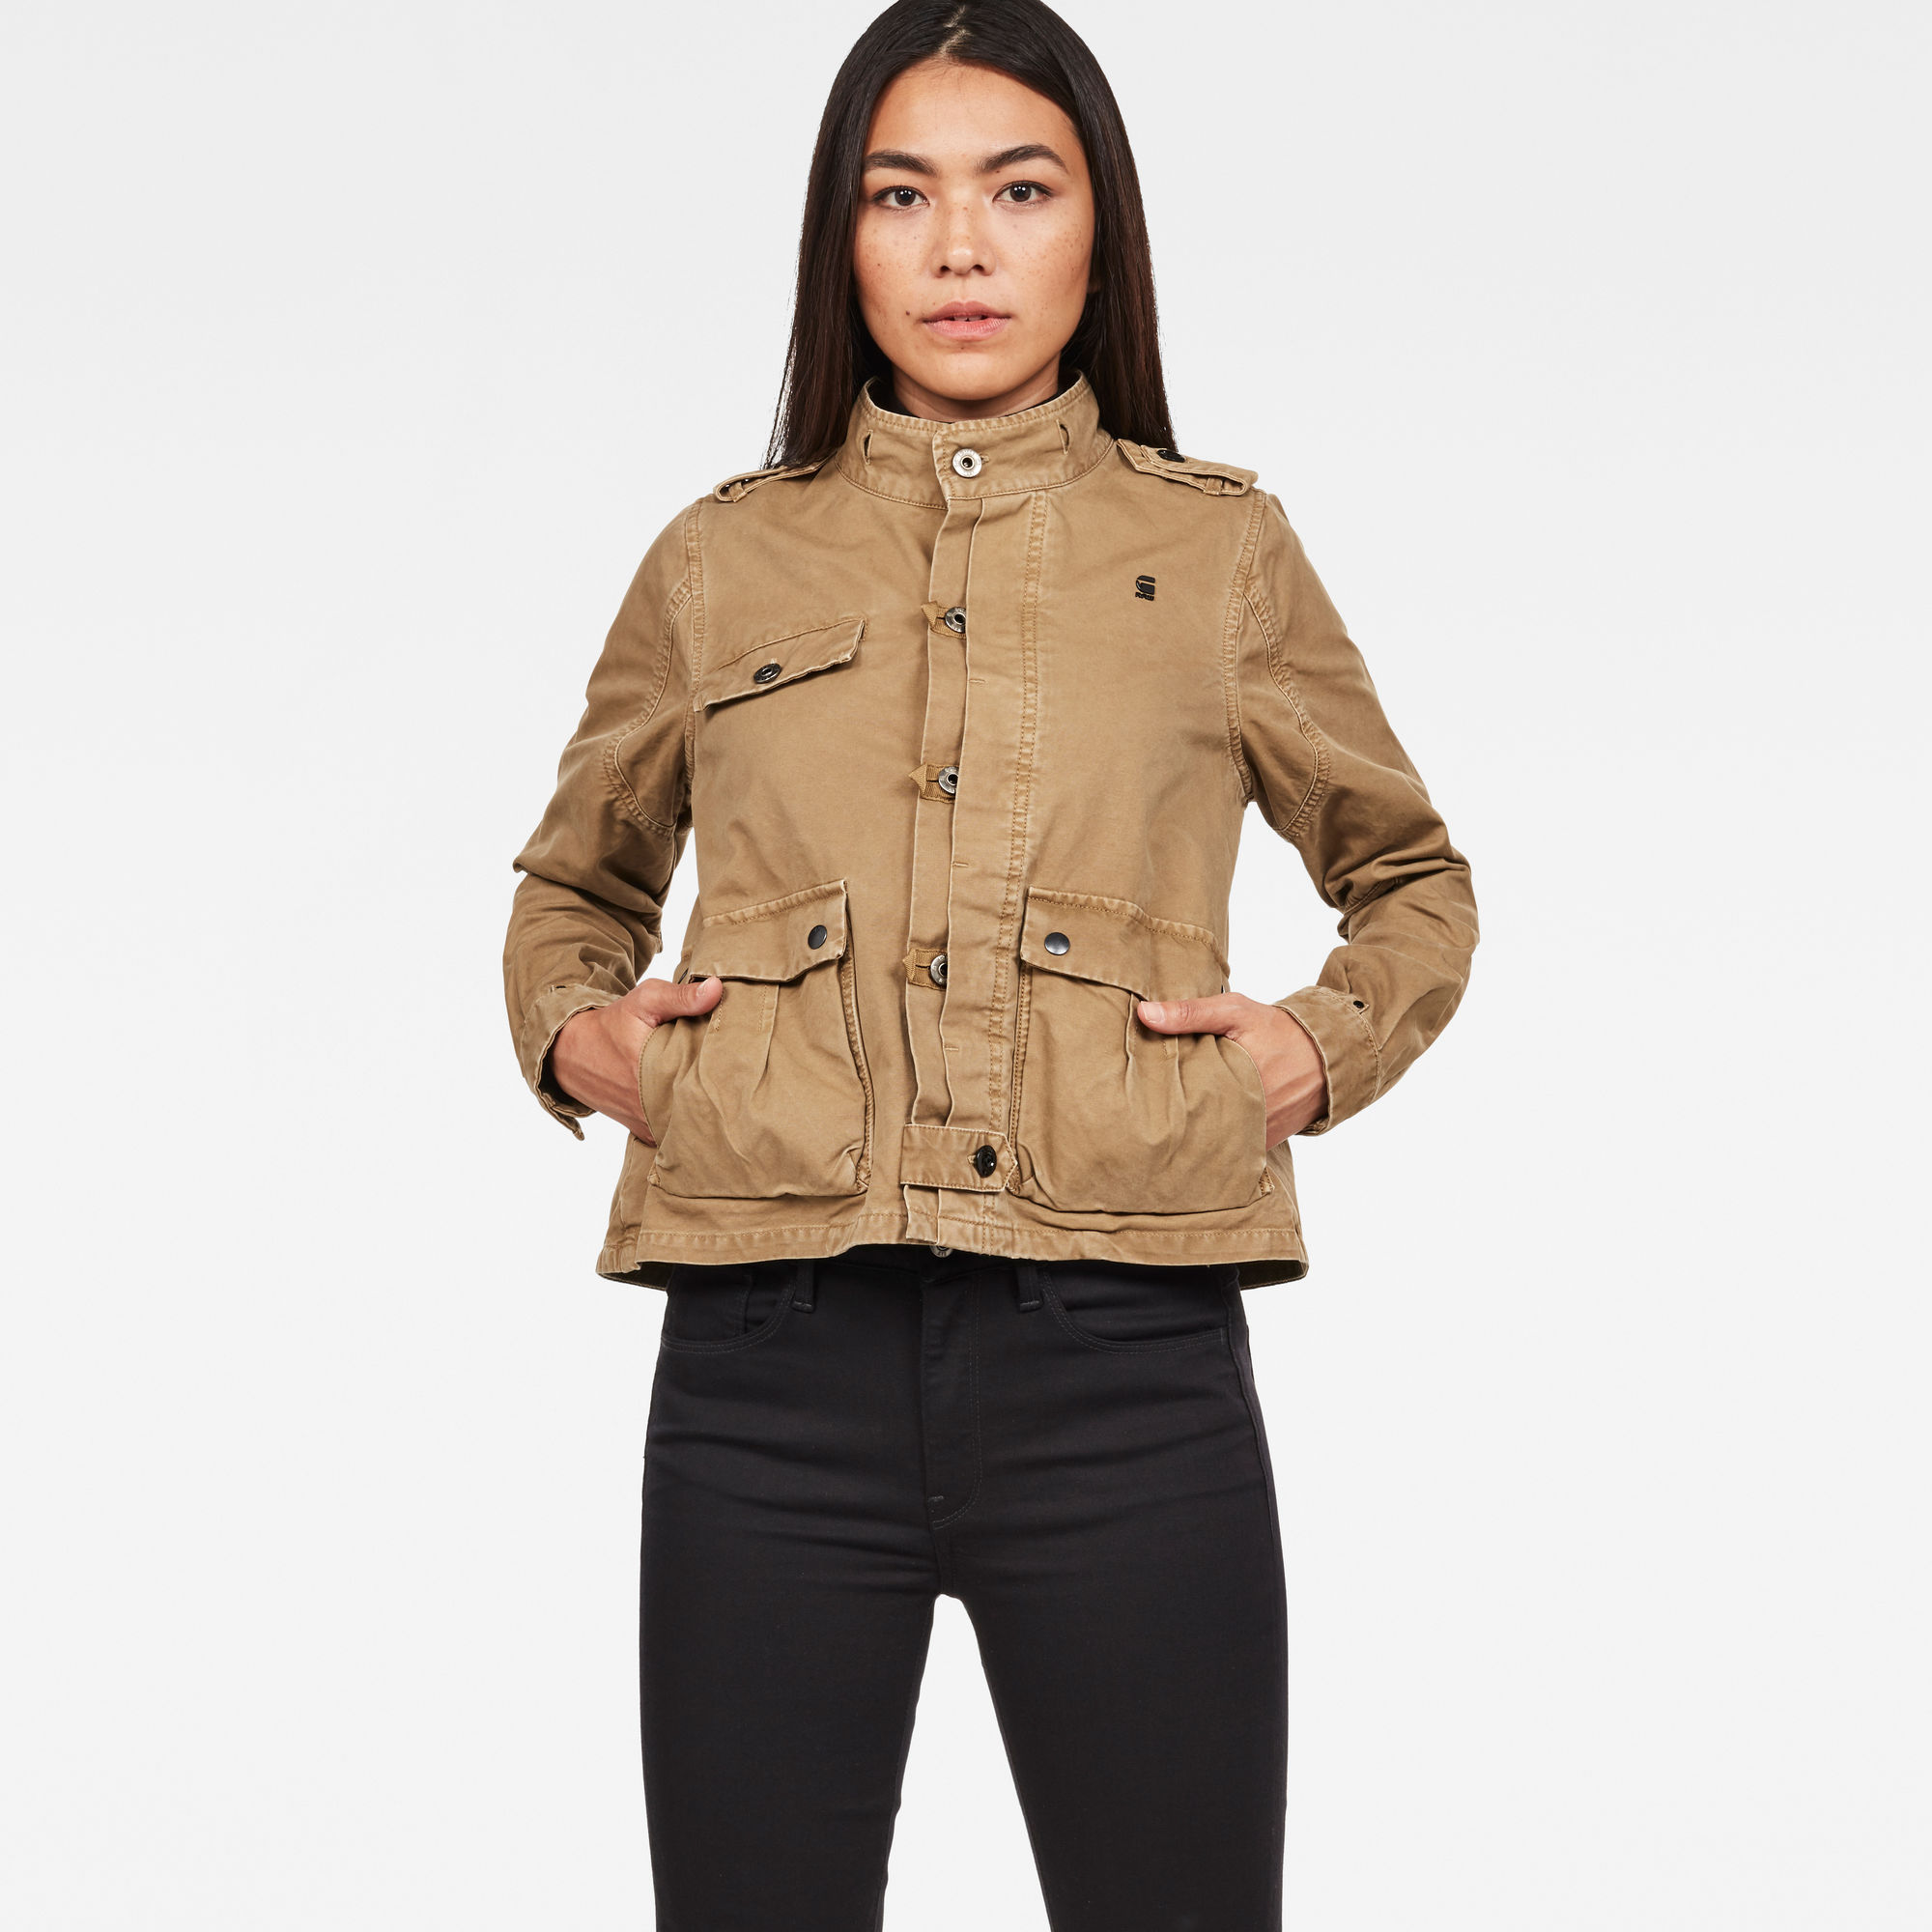 Image of G Star Raw Officer Cropped Jacket